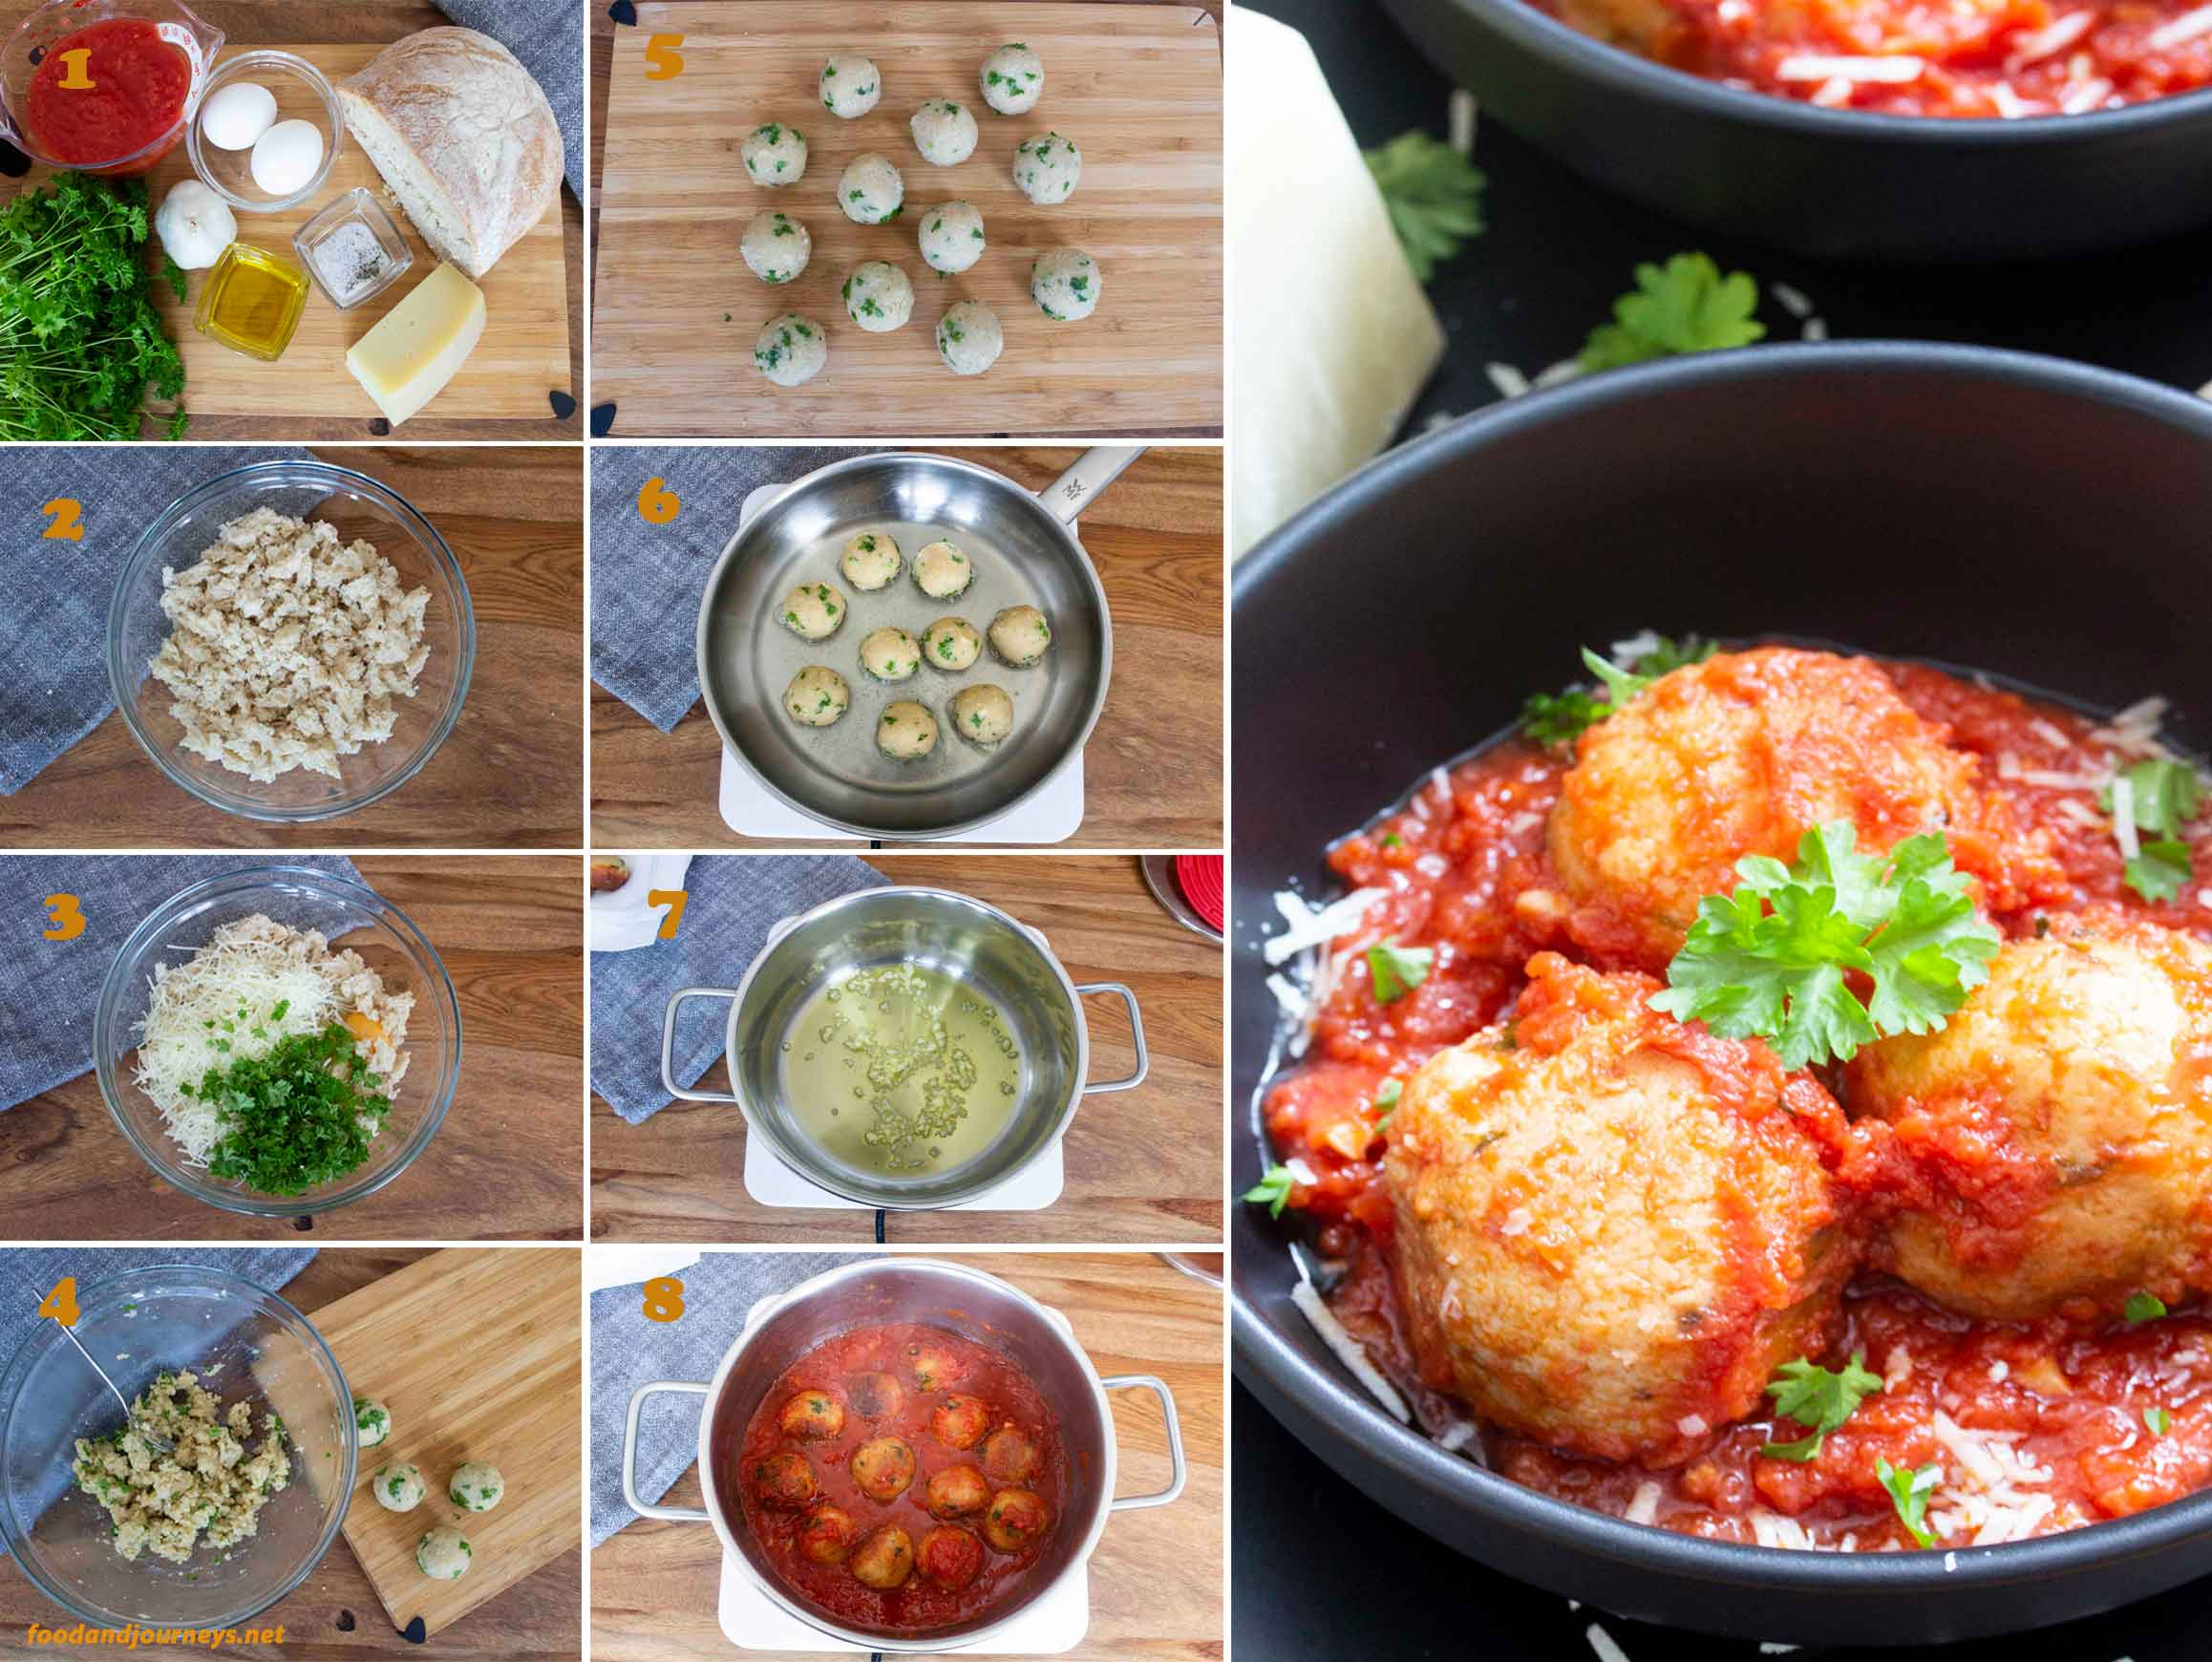 A collage of images showing the step by step process on how to make Italian Bread & Cheese Dumplings